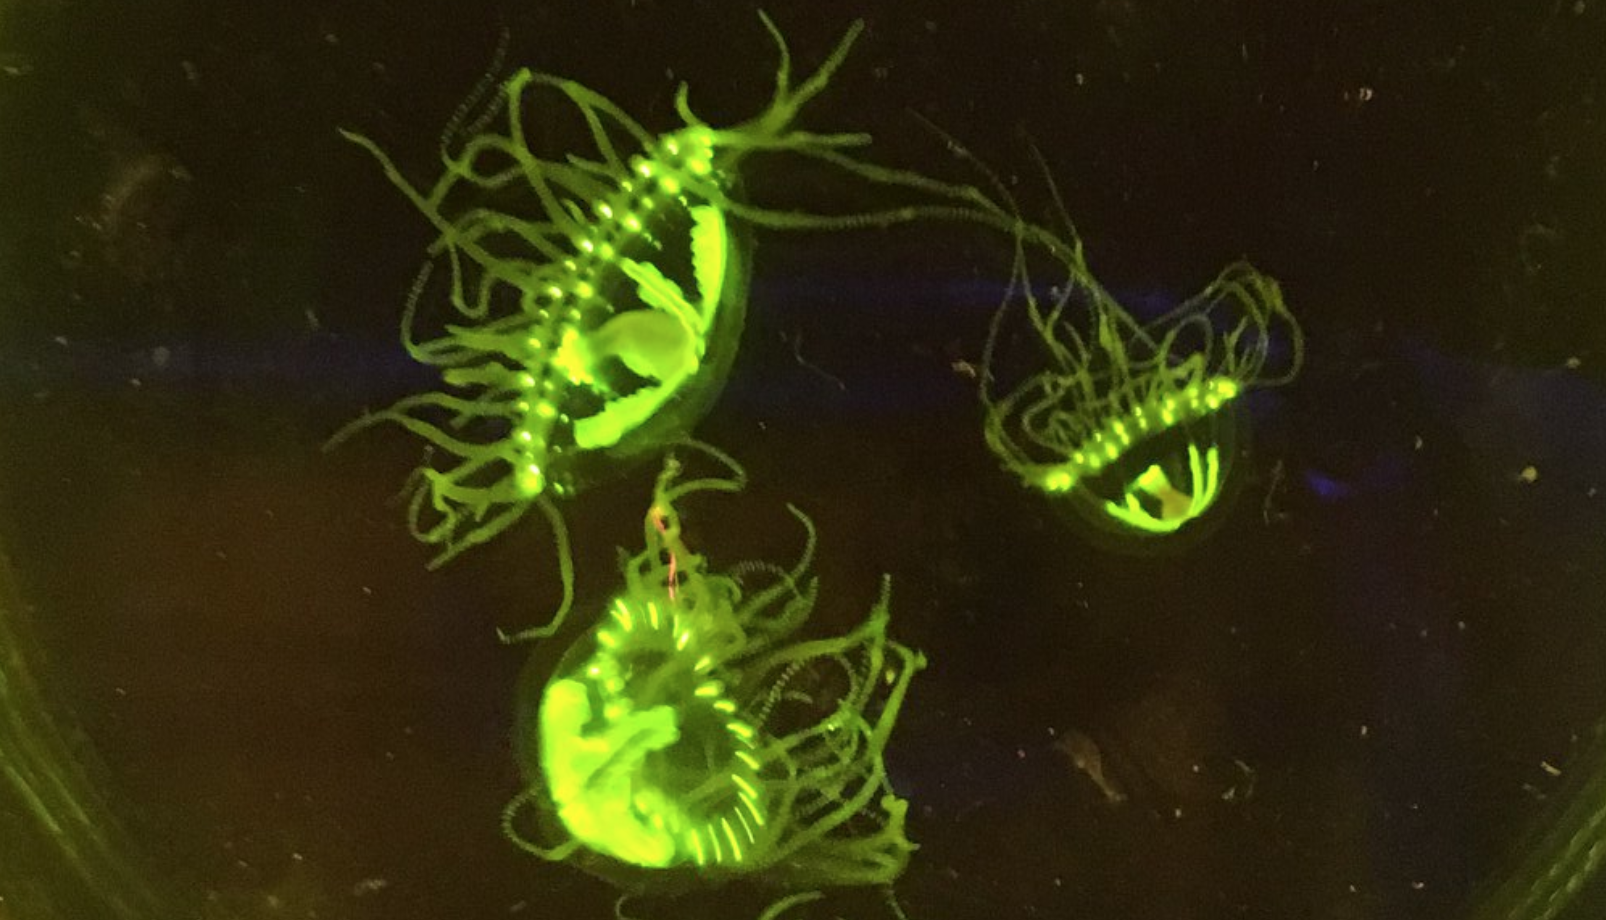 Researcher finds nearly 300 dangerous clinging jellyfish in Barnegat Bay